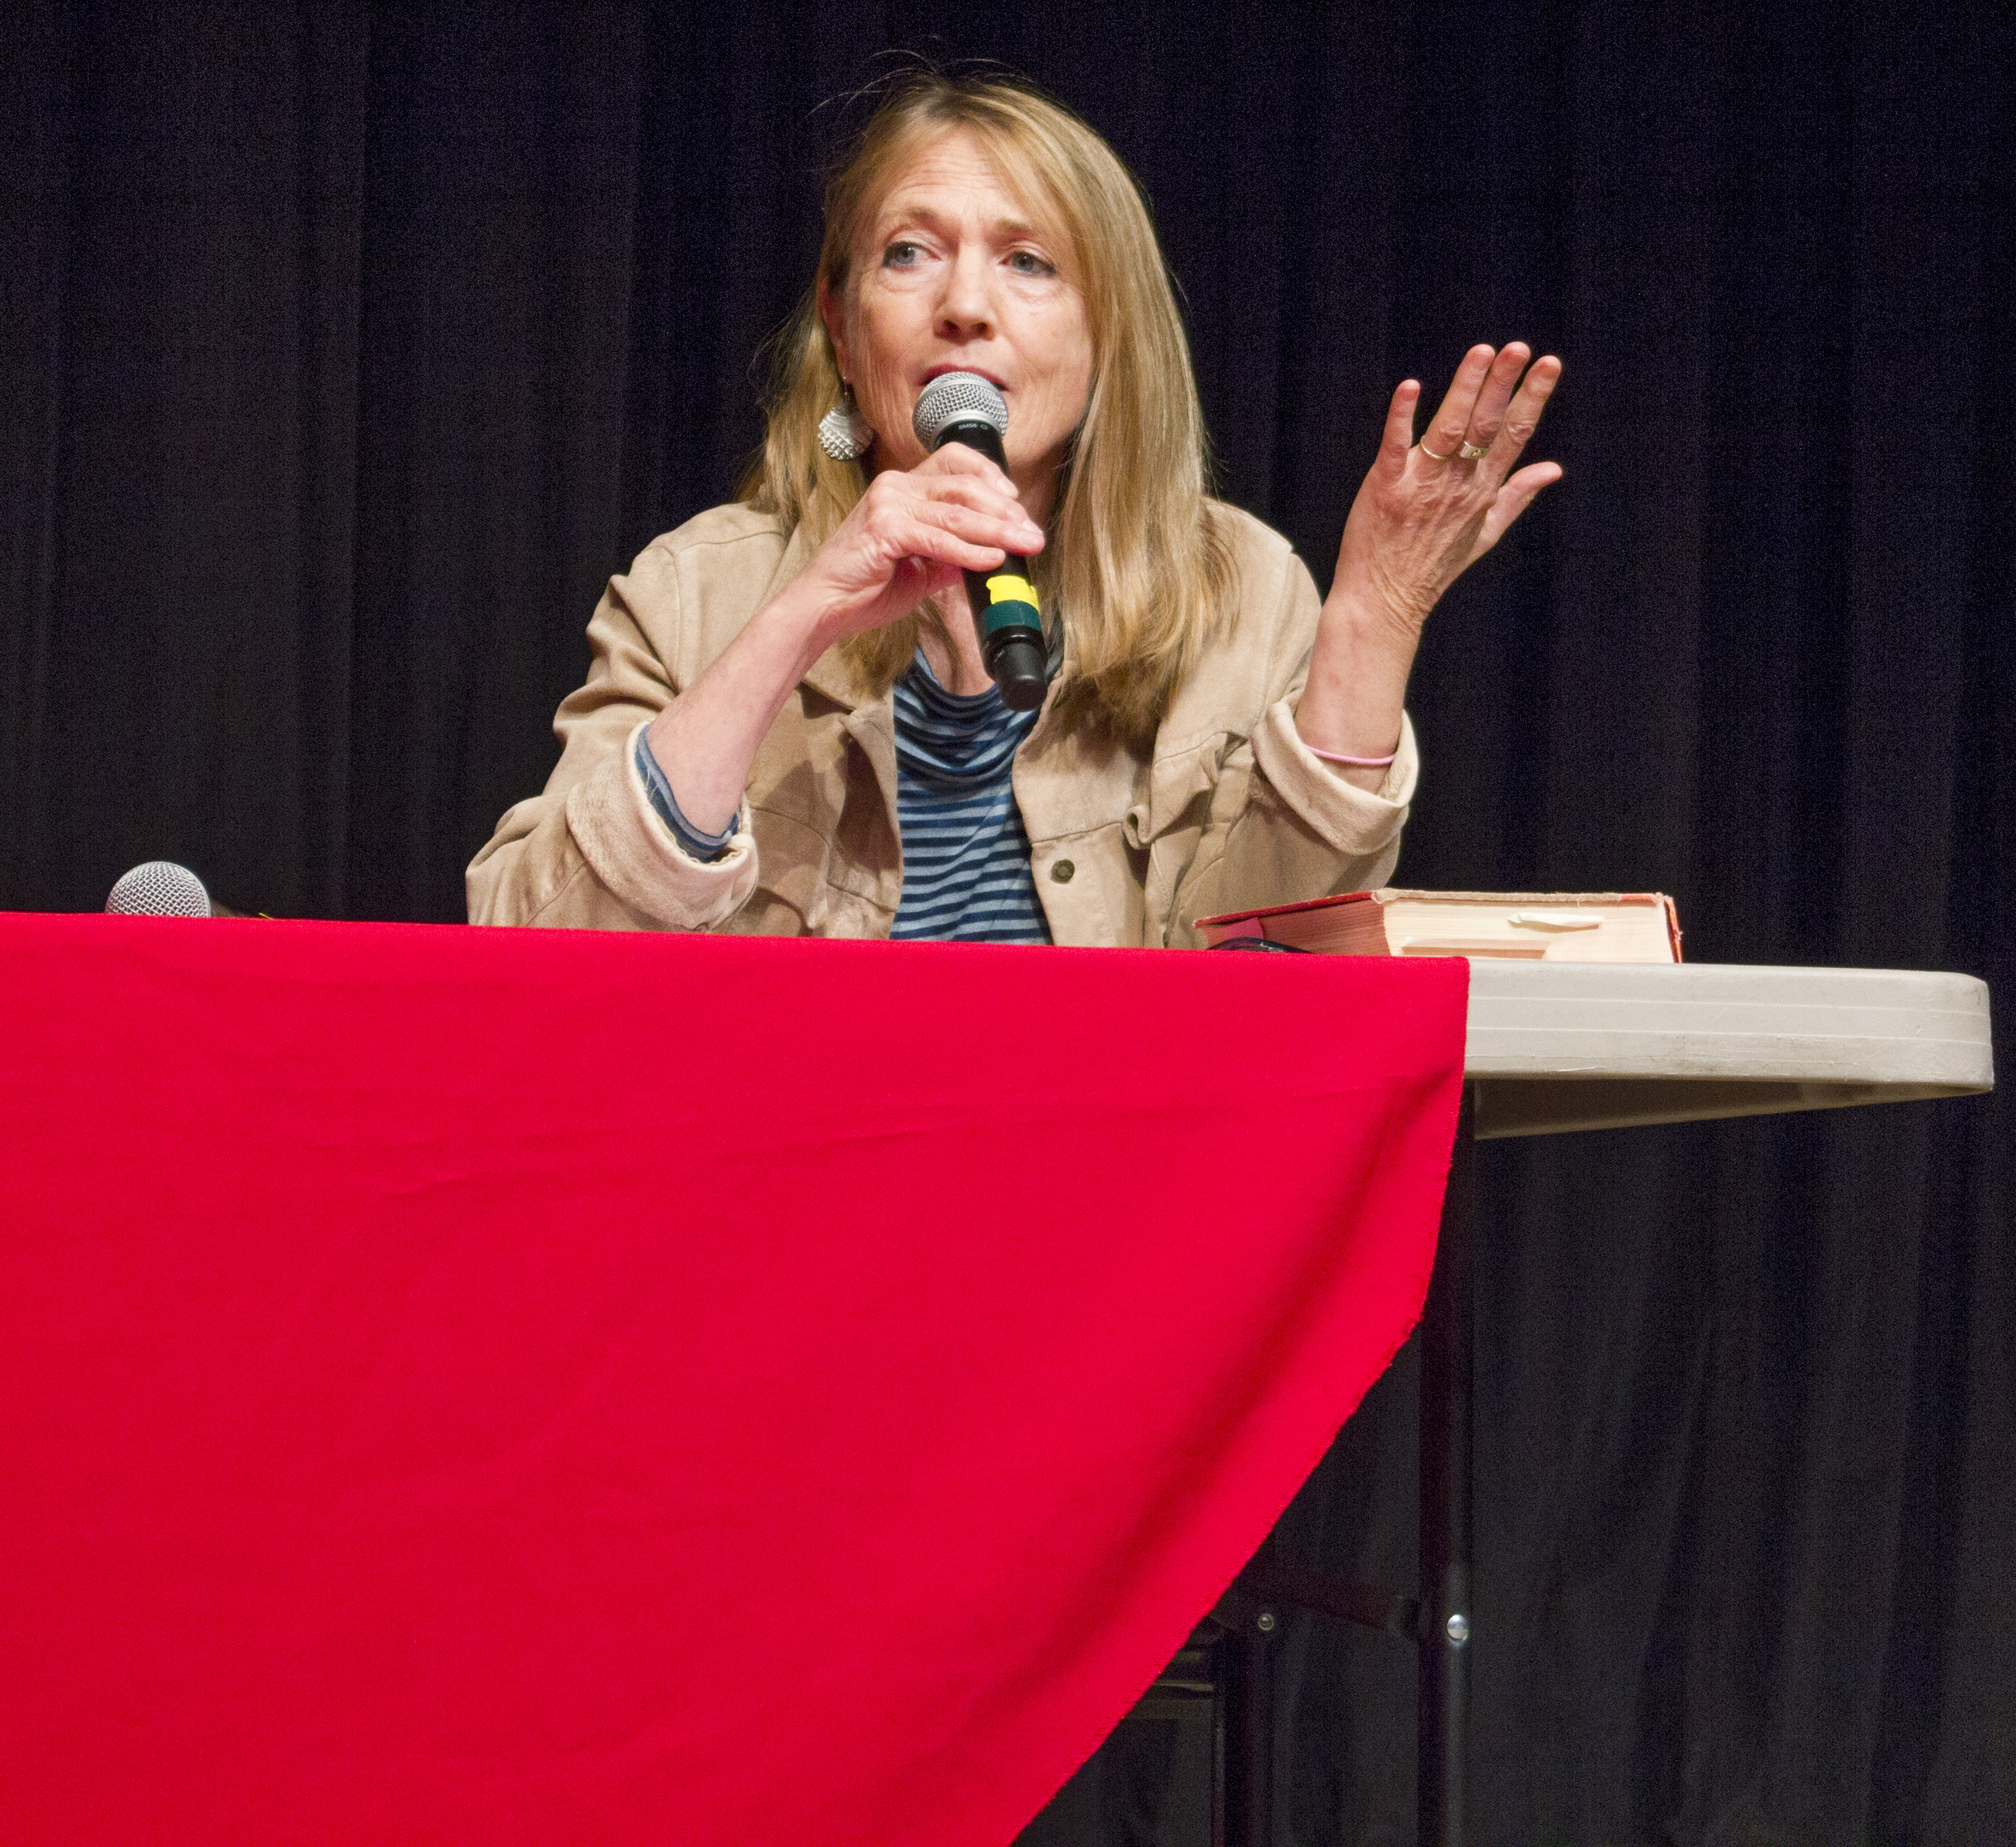 Woman speaking into microphone.